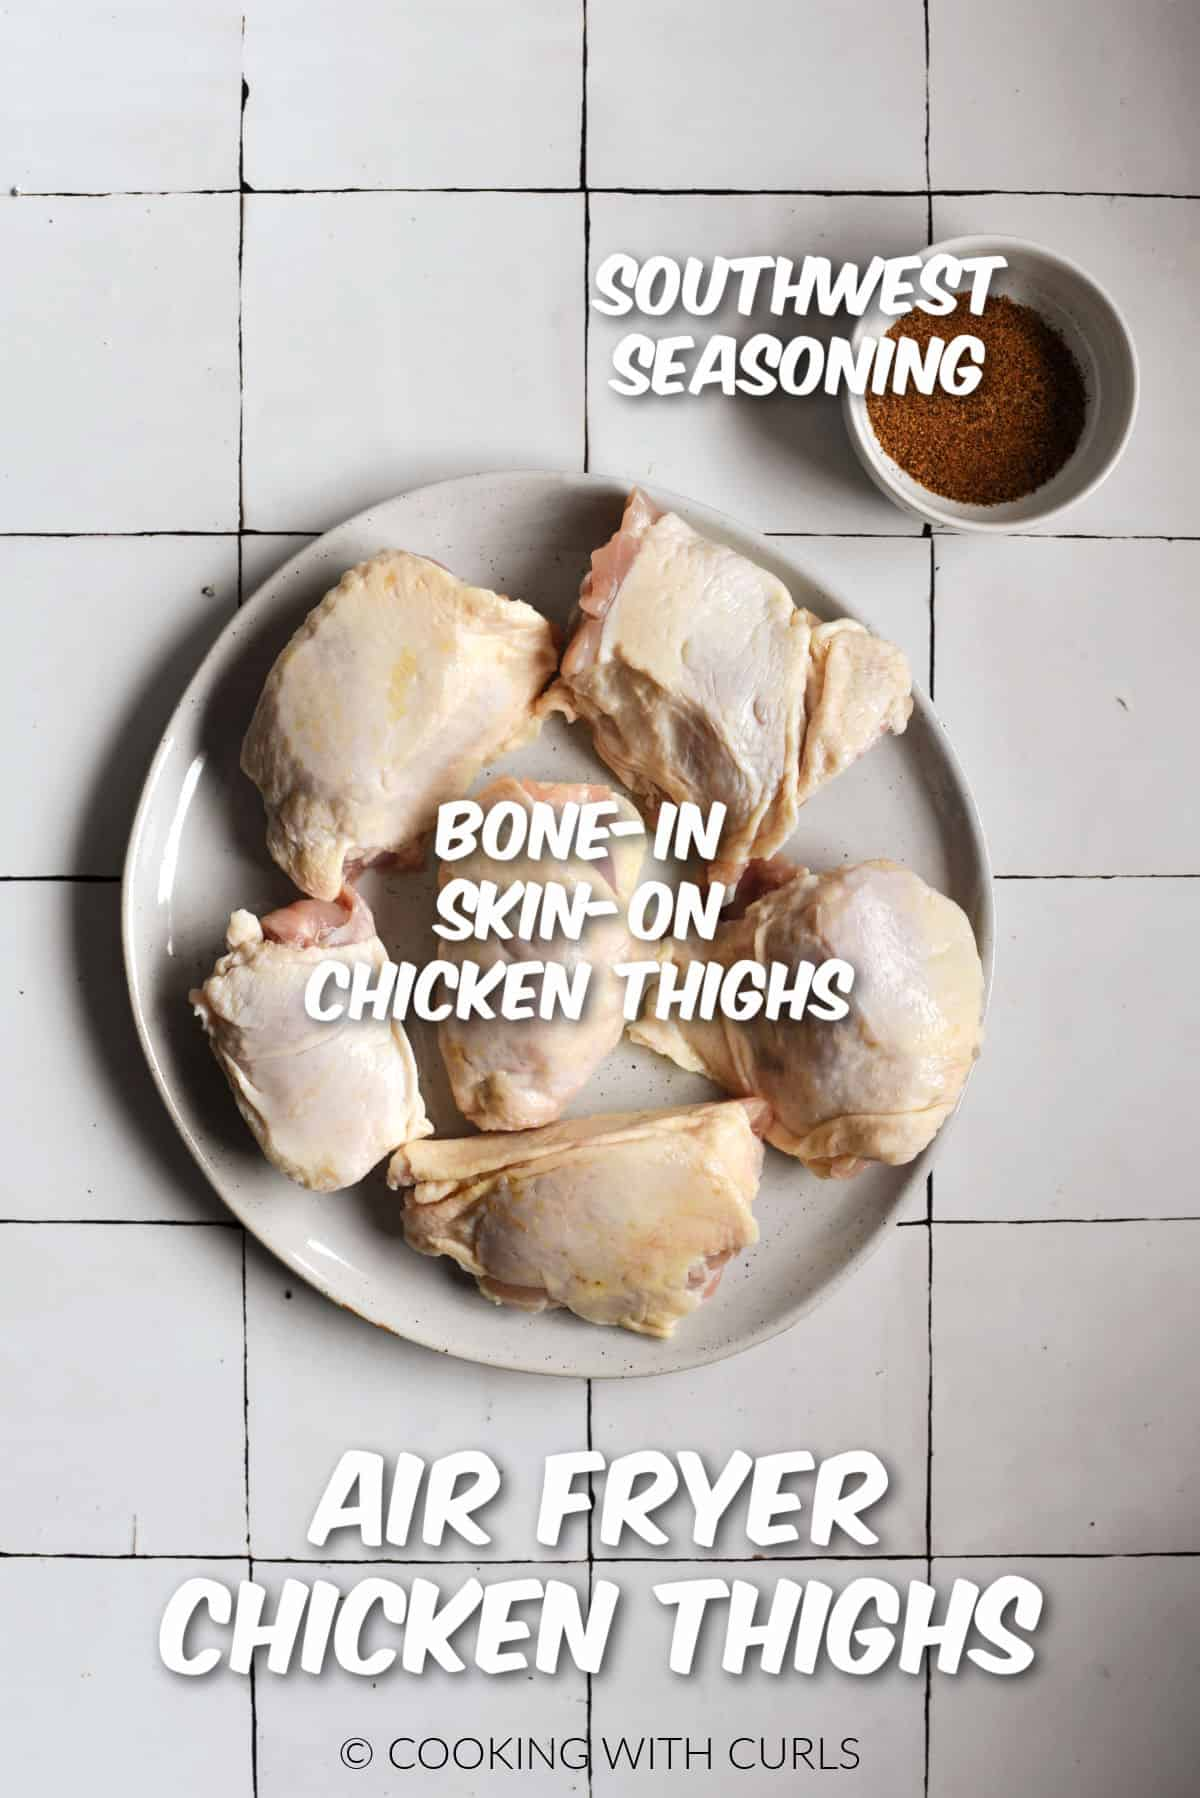 Six skin-on, bone-in chicken thighs on a large plate with southwest seasoning in a small bowl.